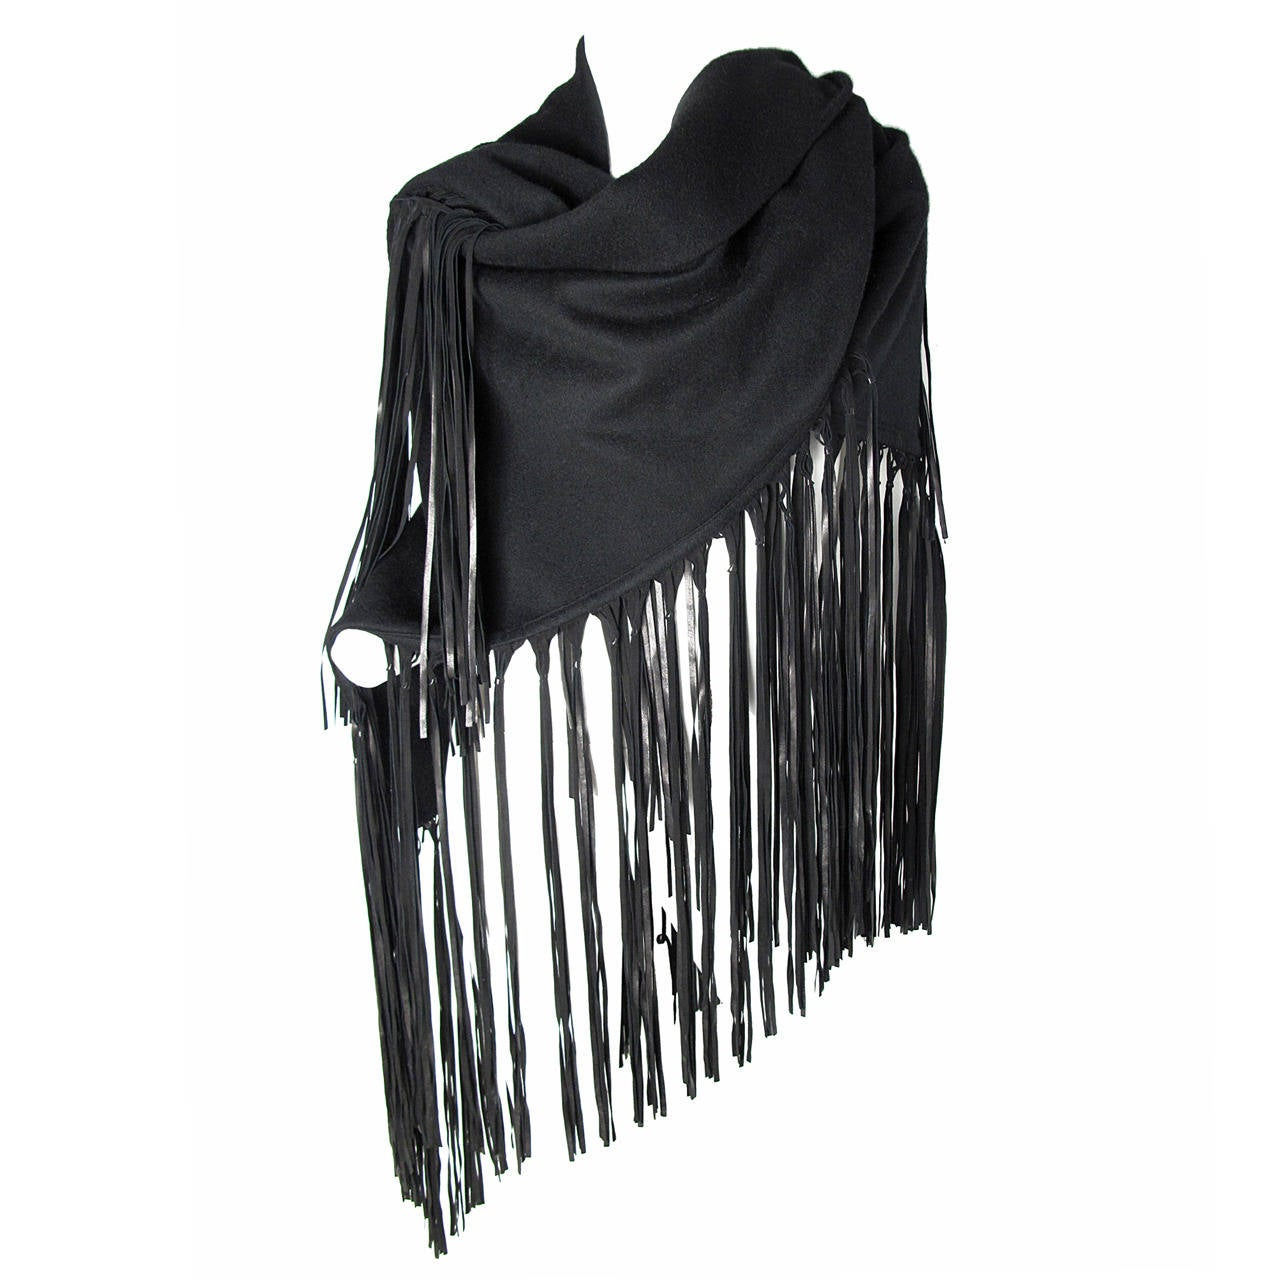 1980s Hermes Black Wool Shawl with Leather Fringe 1